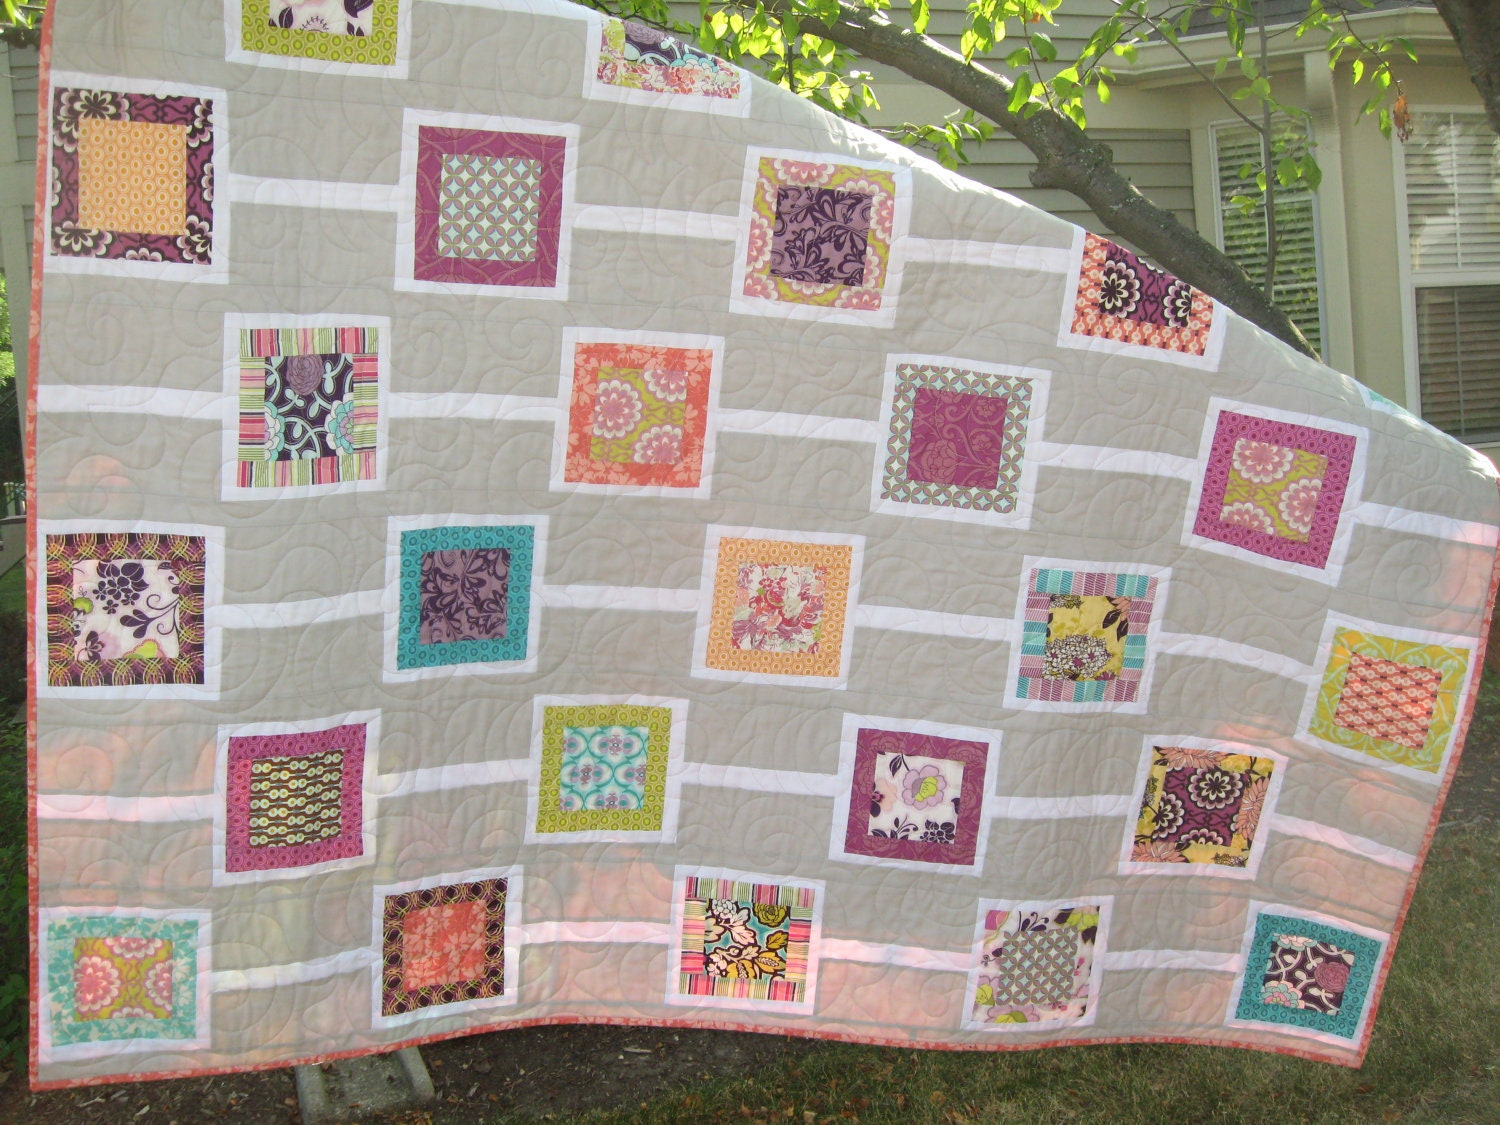 Chain Reaction Modern Quilt Kit Pattern Included Last Kit